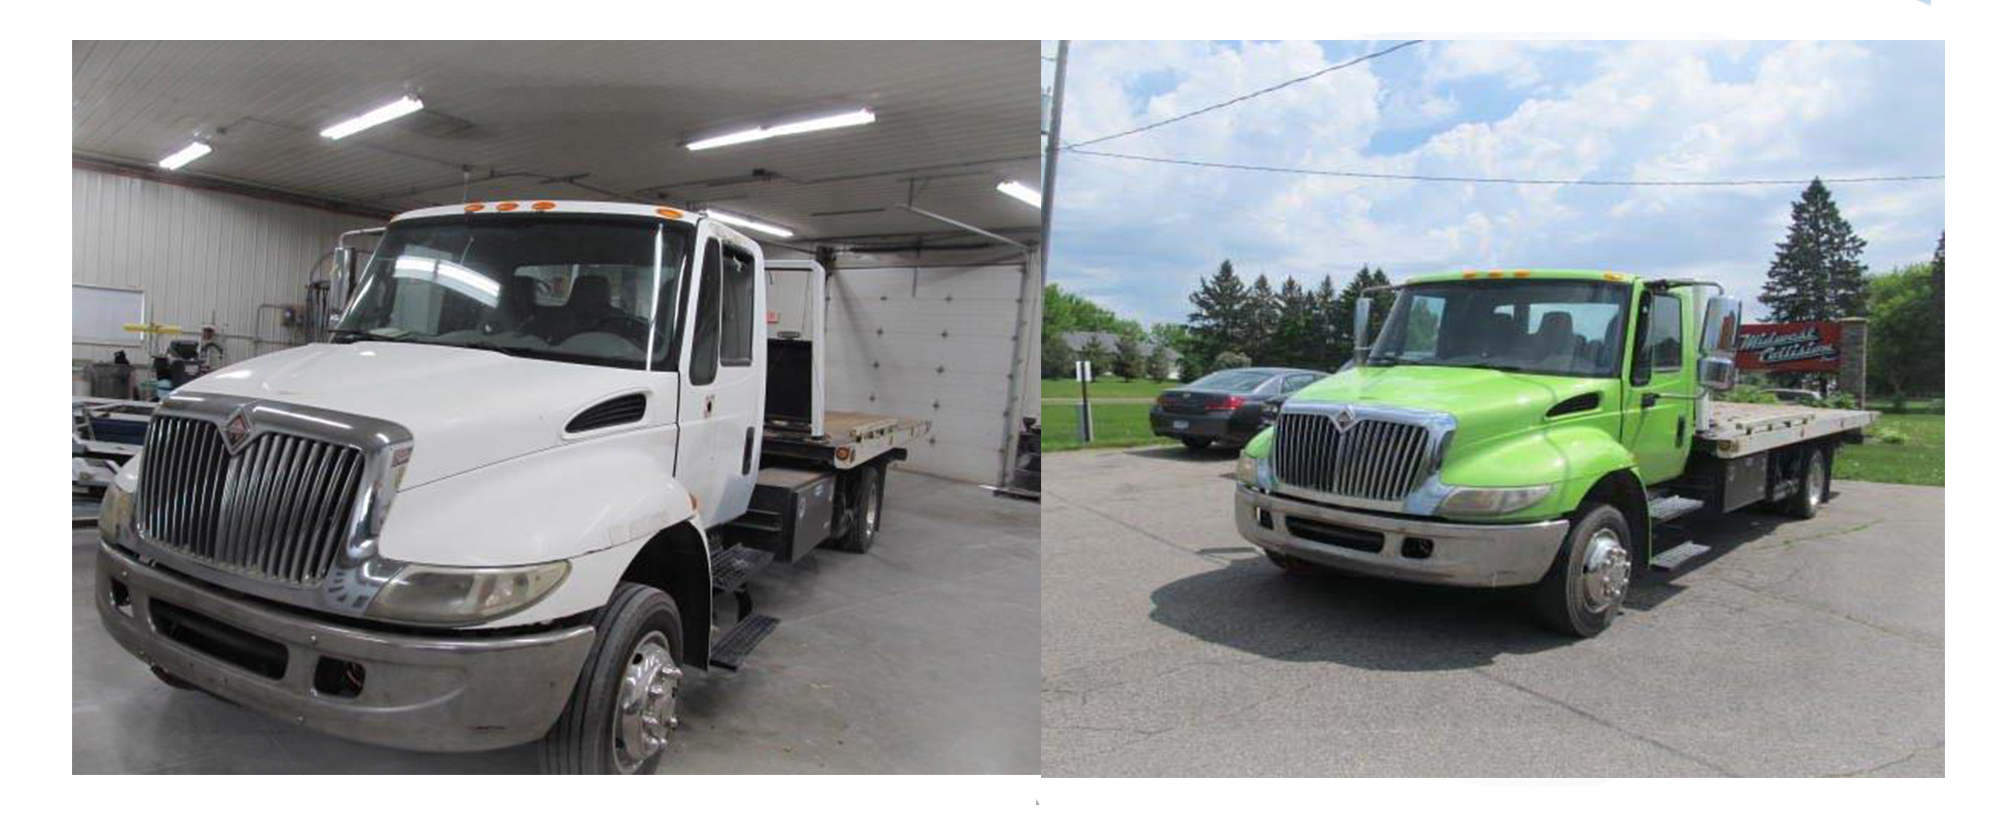 Check out our latest transformation!